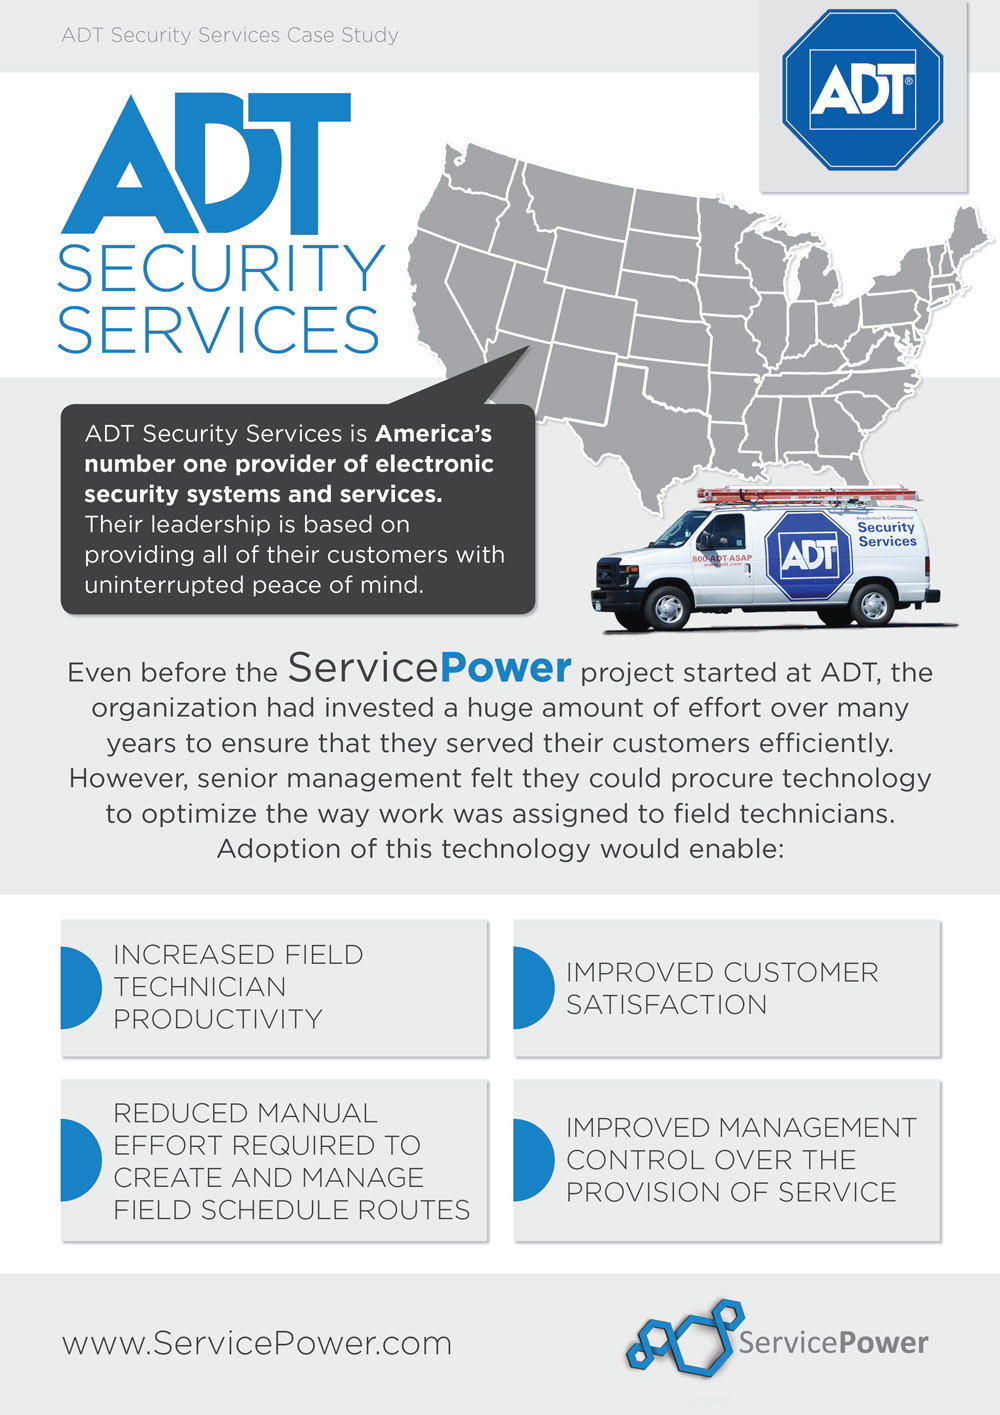 ADT Security Services Case Study